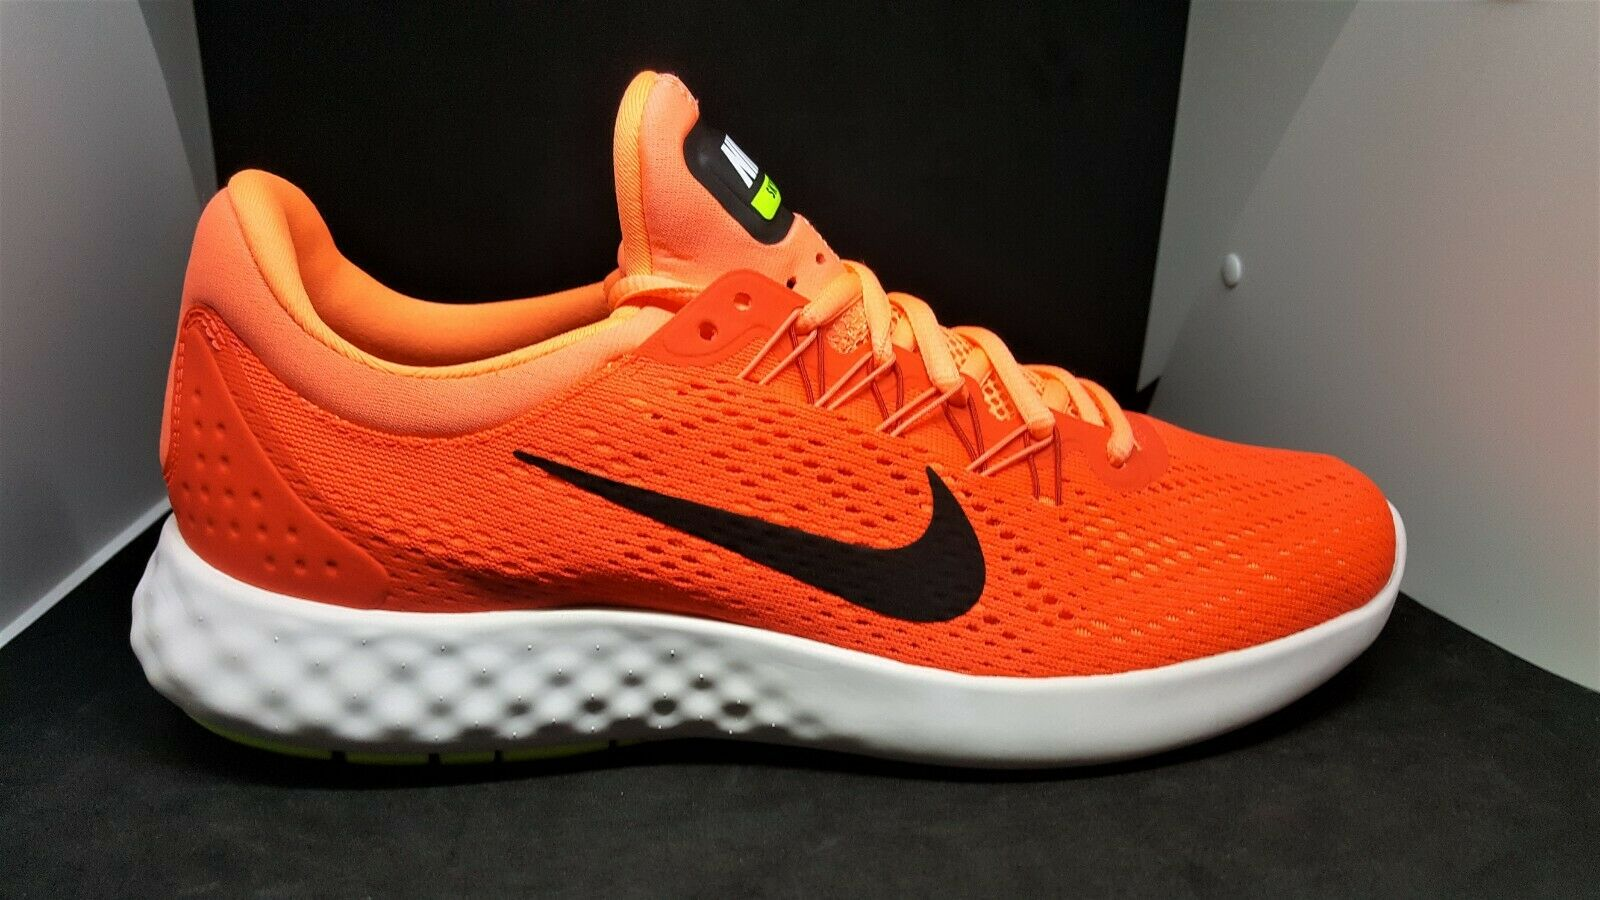 Nike Mens Lunar Skylelux Run Running shoes shoes shoes 855808-600 Size 10 9fcb59